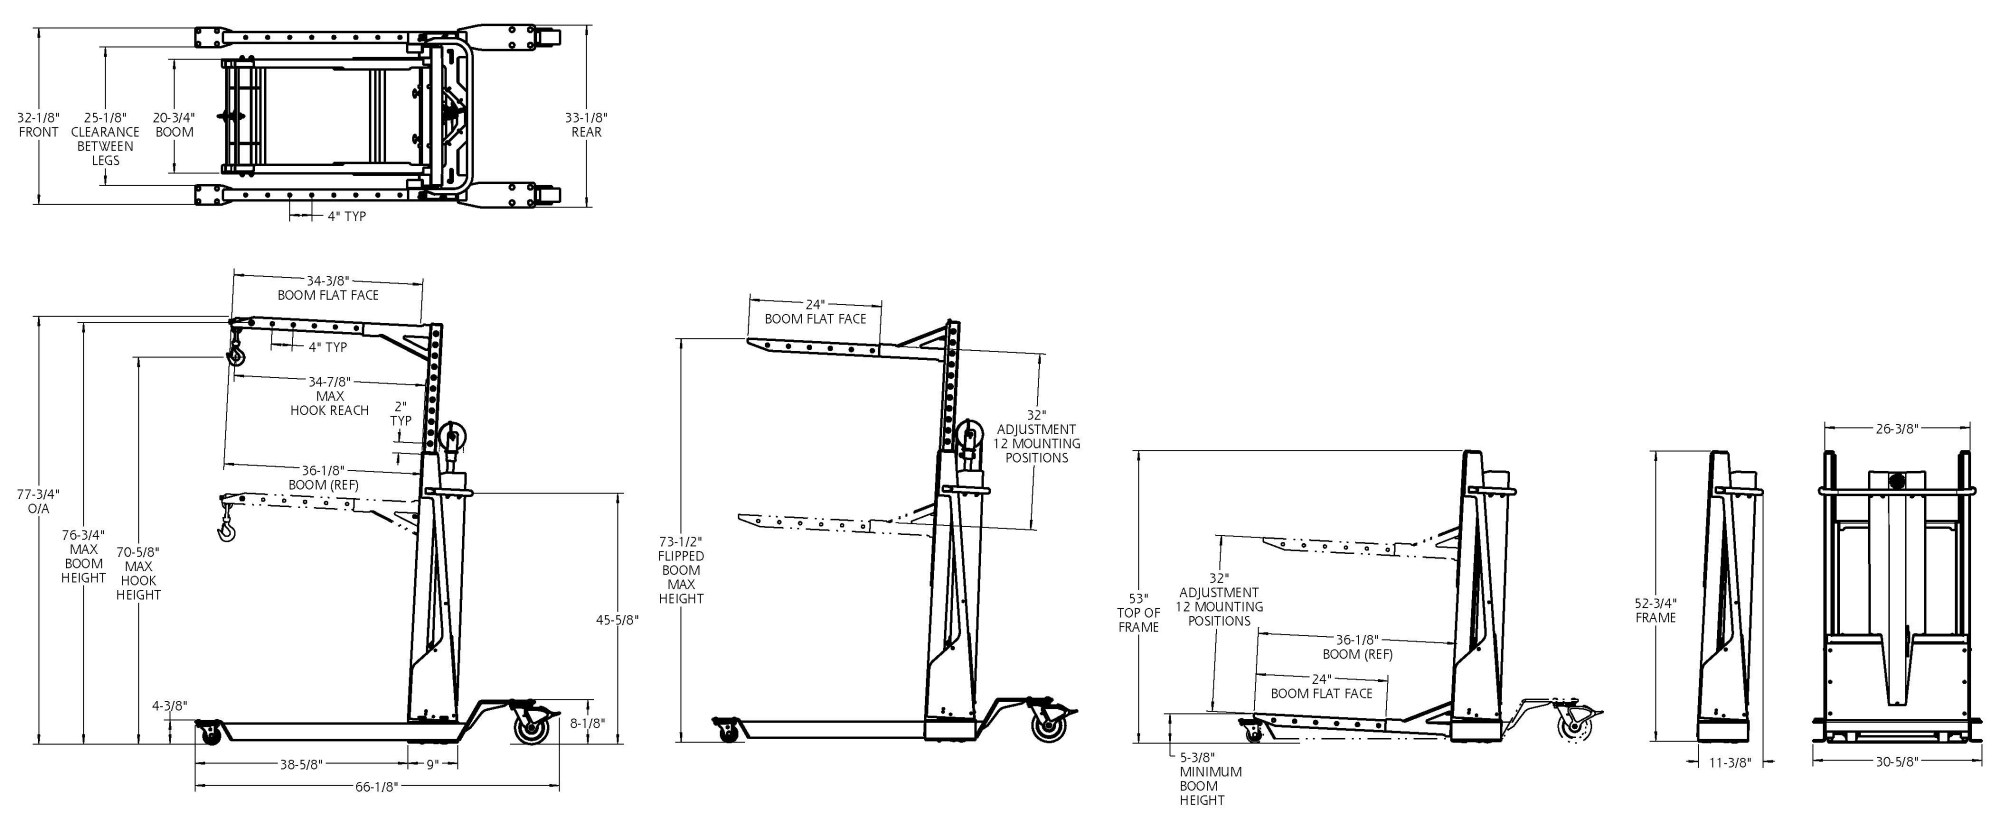 hight resolution of 12v electric lift dimensions click on the image to expand and see details dimensional information